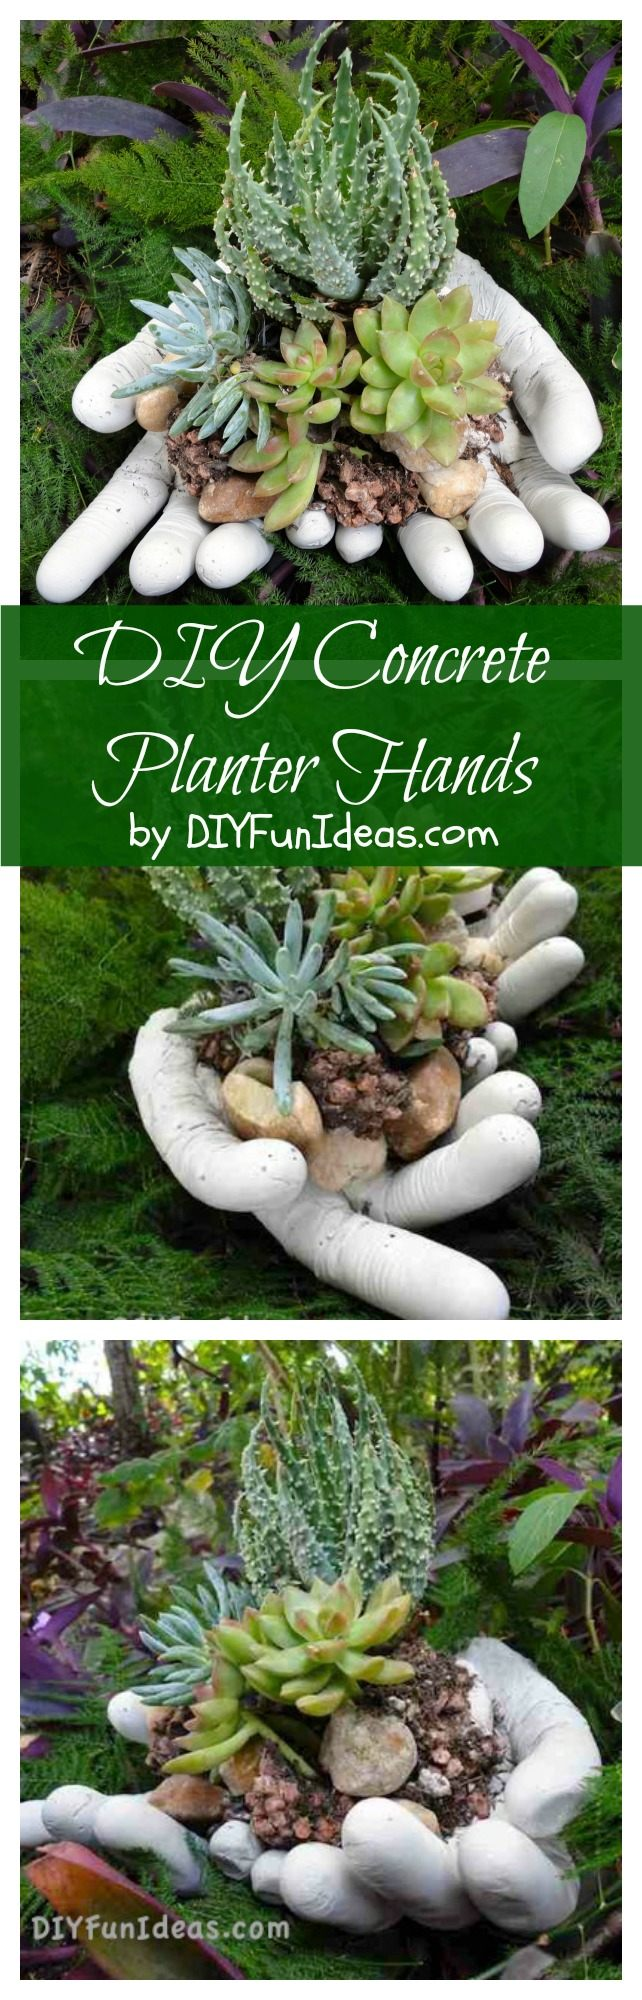 DIY-concrete-planter-hands